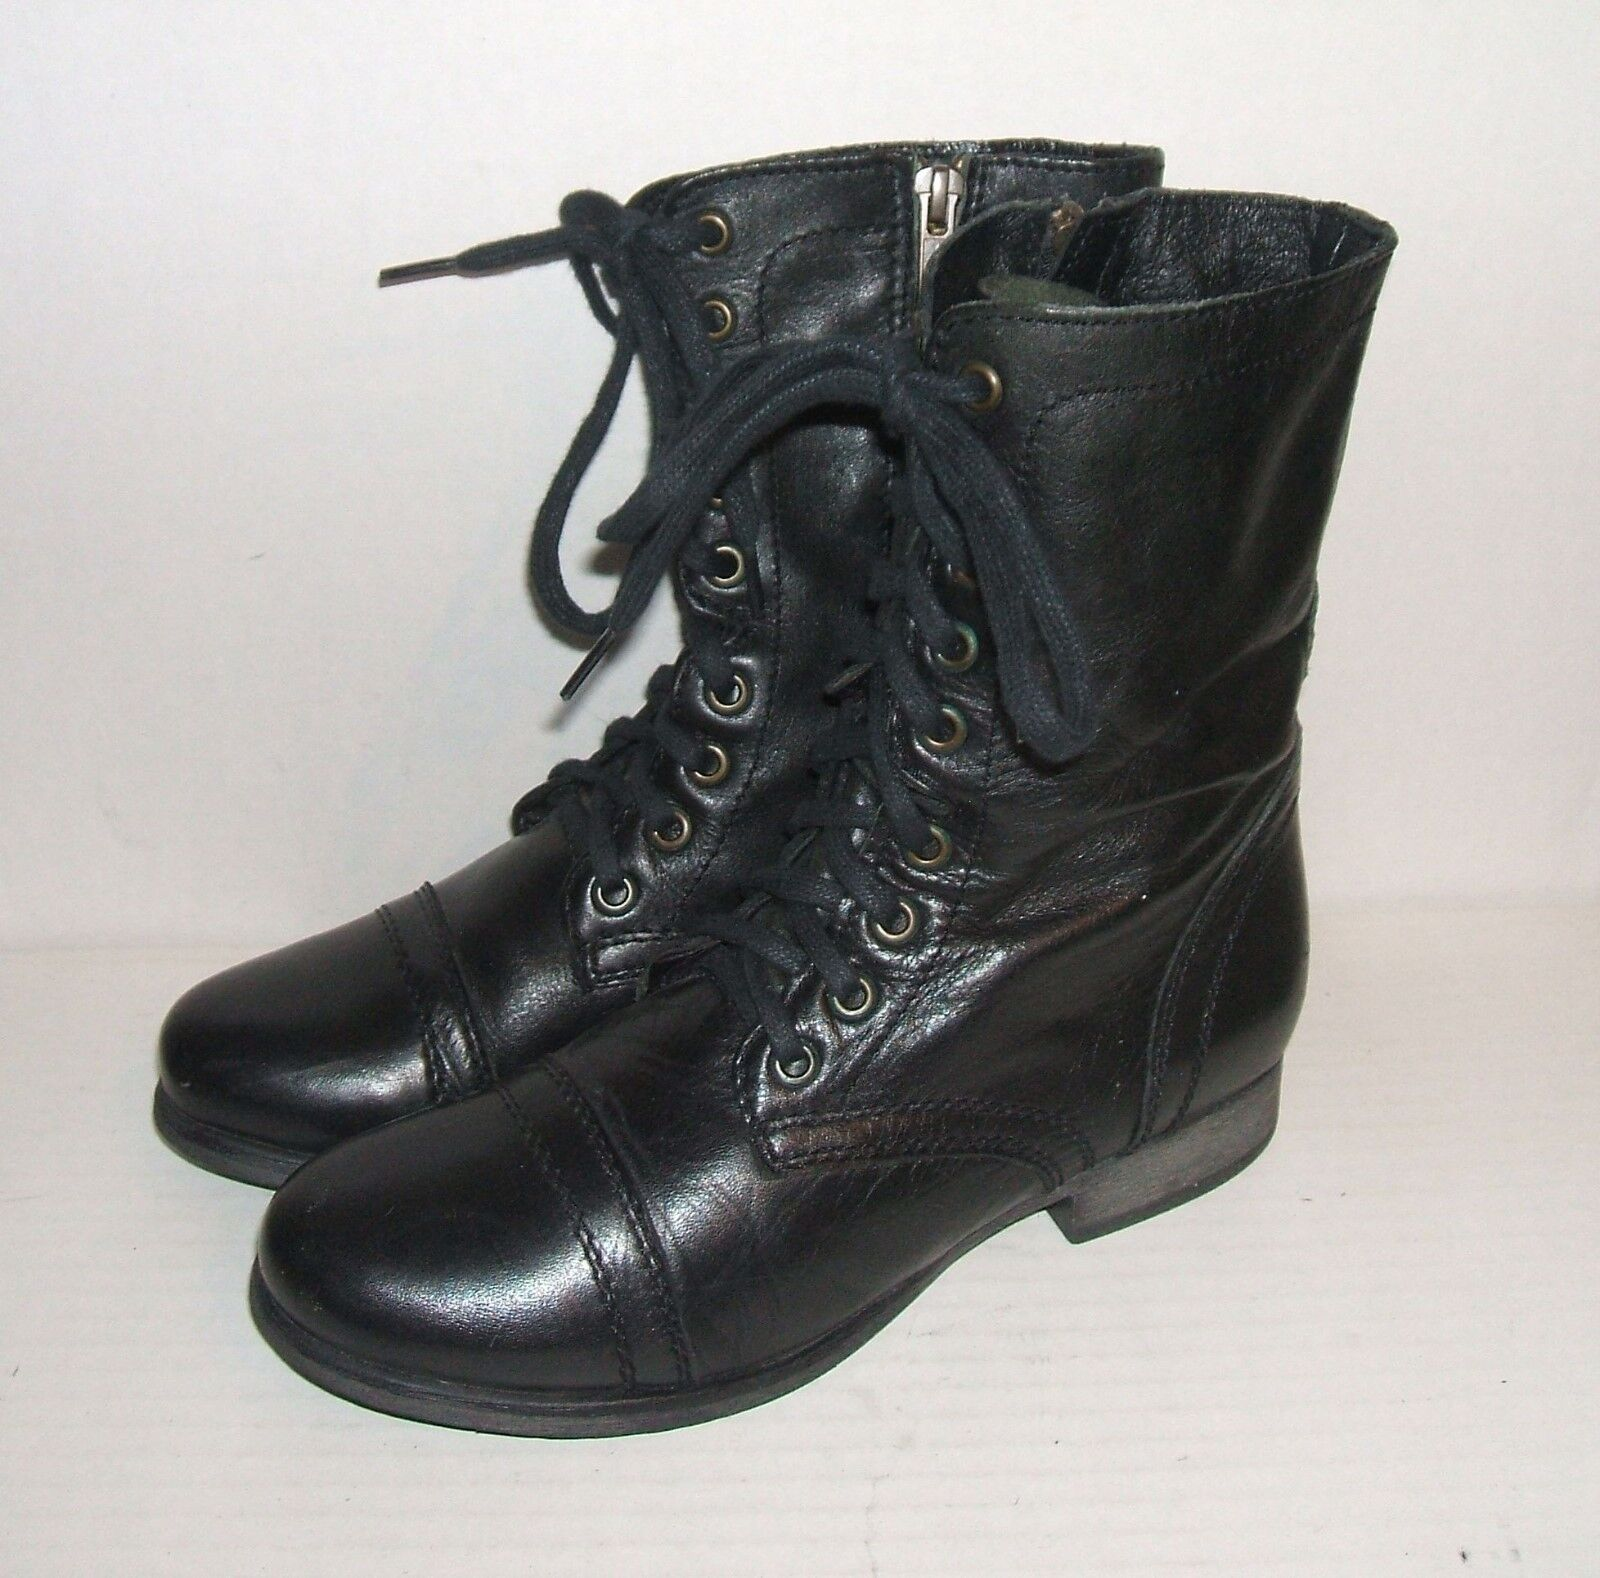 STEVE MADDEN  TROOPA  WOMEN'S BLACK LEATHER LACE-UP ZIPPER ANKLE BOOTS SIZE 7 B